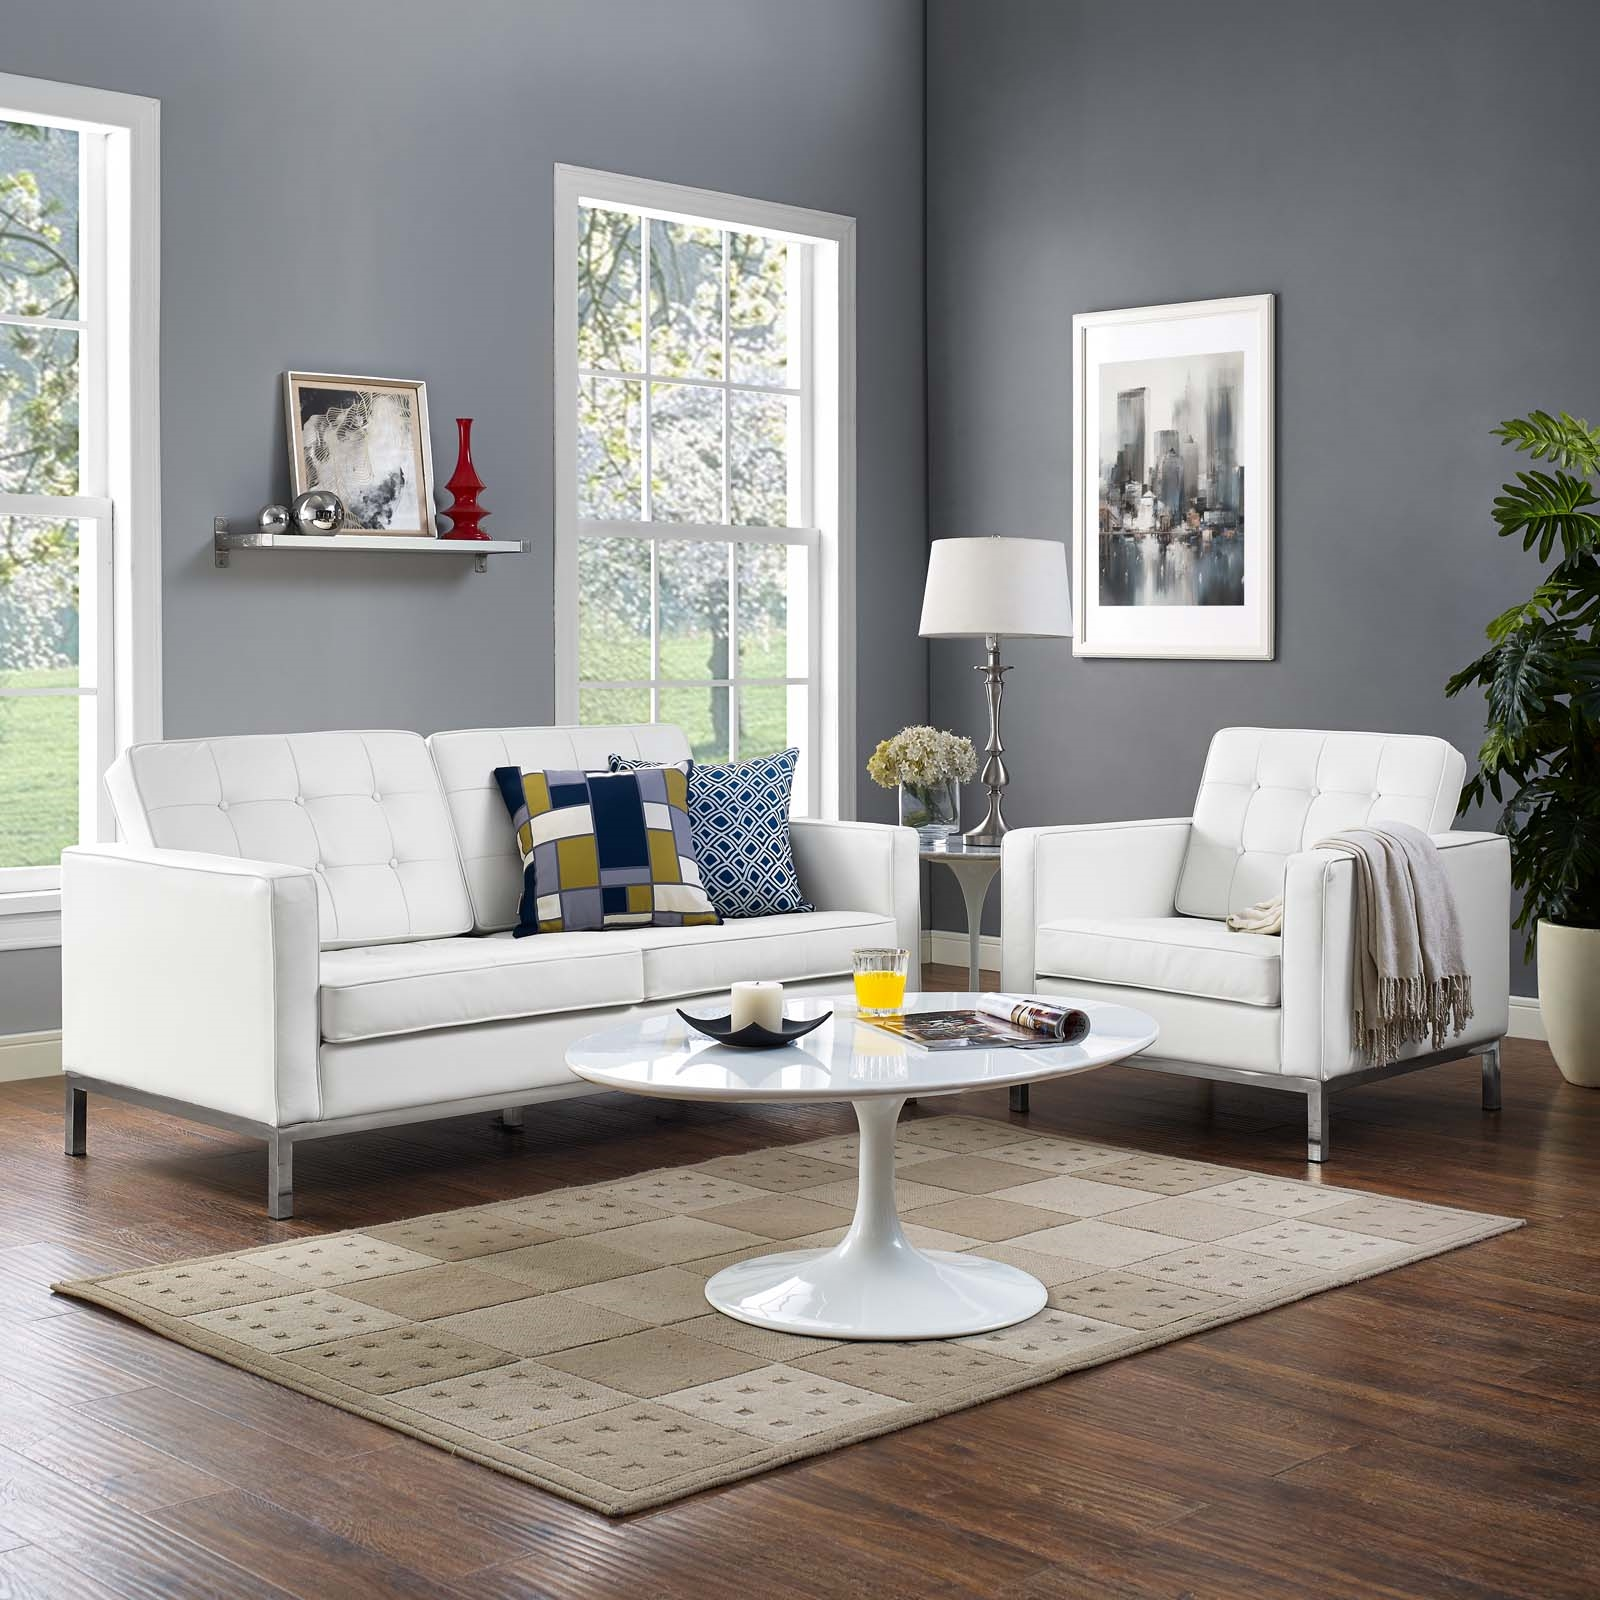 Loft 2 Piece Leather Loveseat and Armchair Set in Cream White